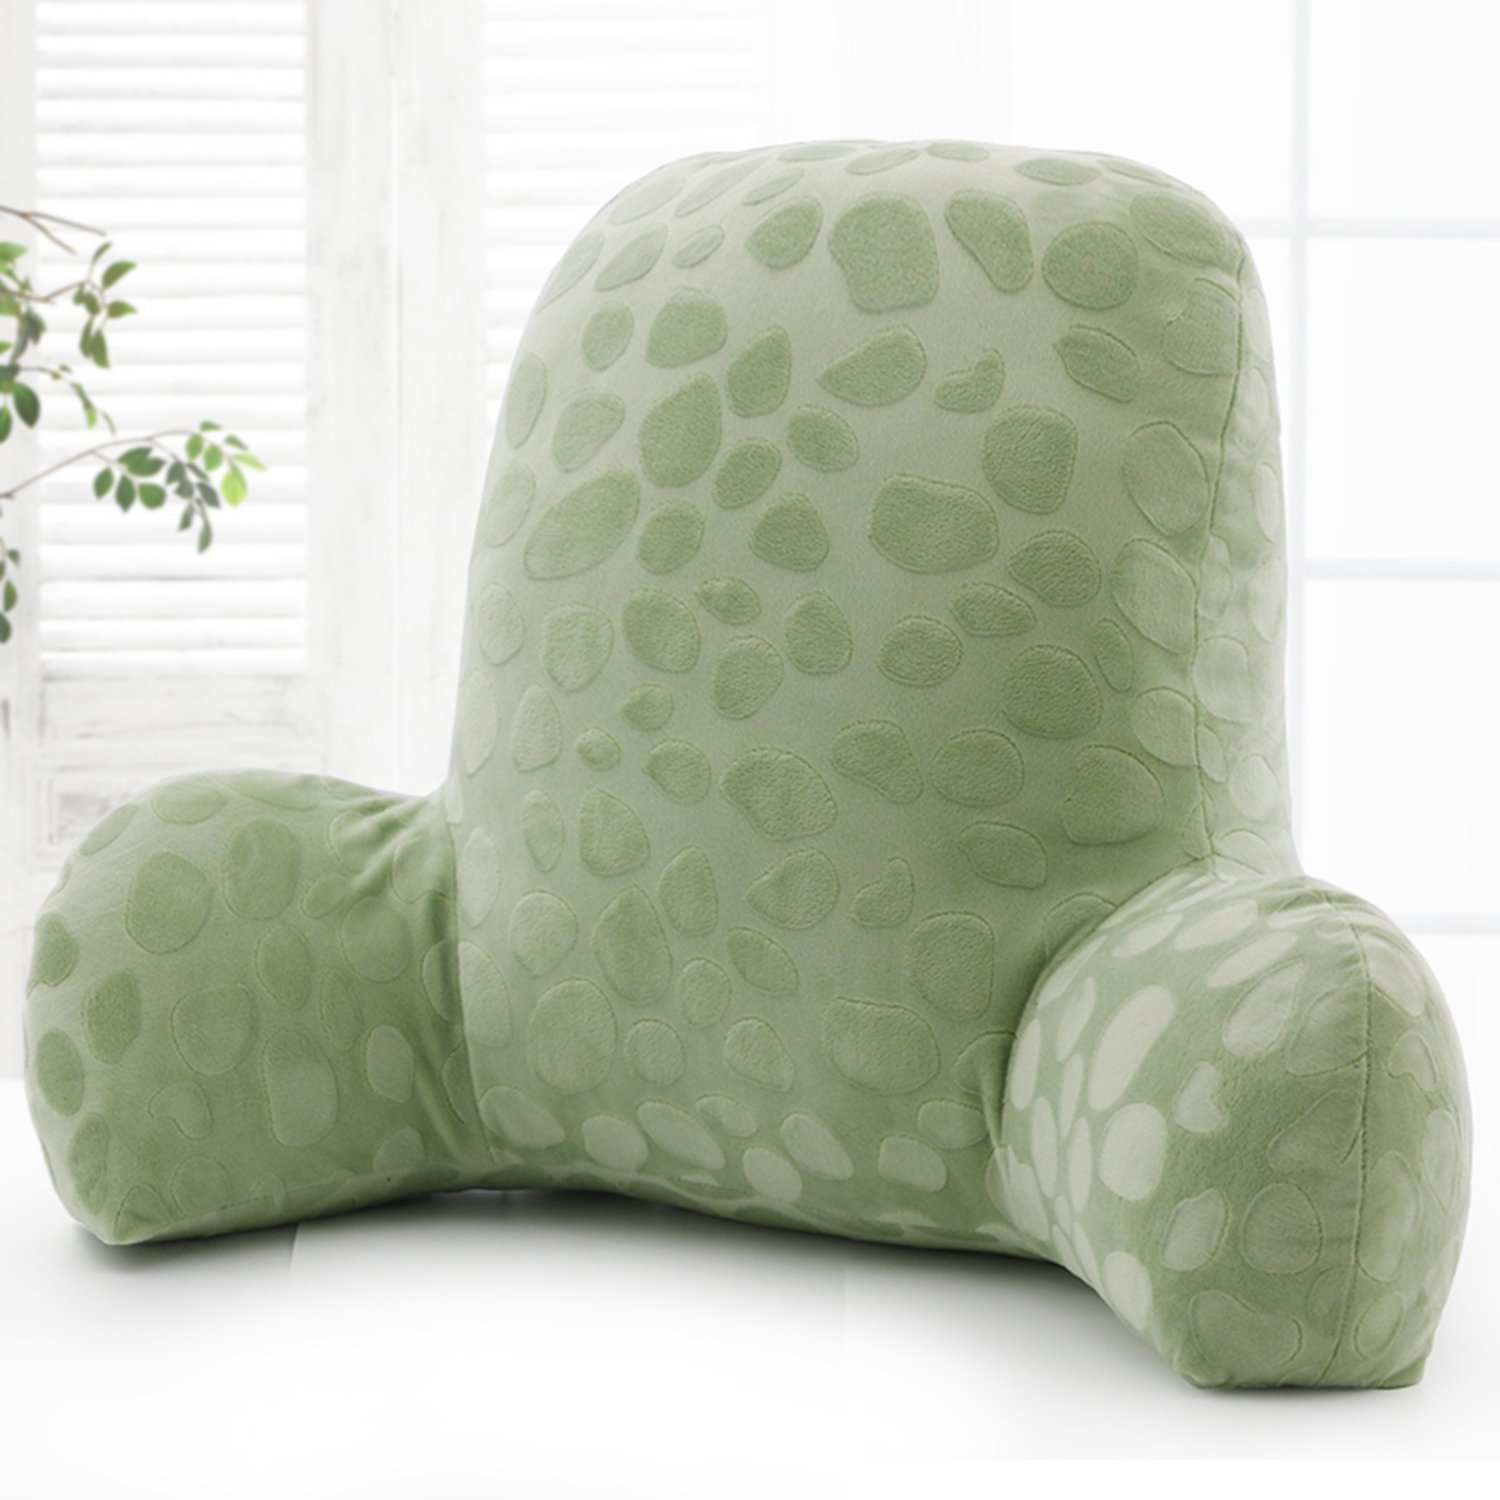 Wwang Embossed plush Reading Pillow - Best Bed Pillow with Arm Reading Bed - Perfect for Teens, and Kids -by (Matcha green)